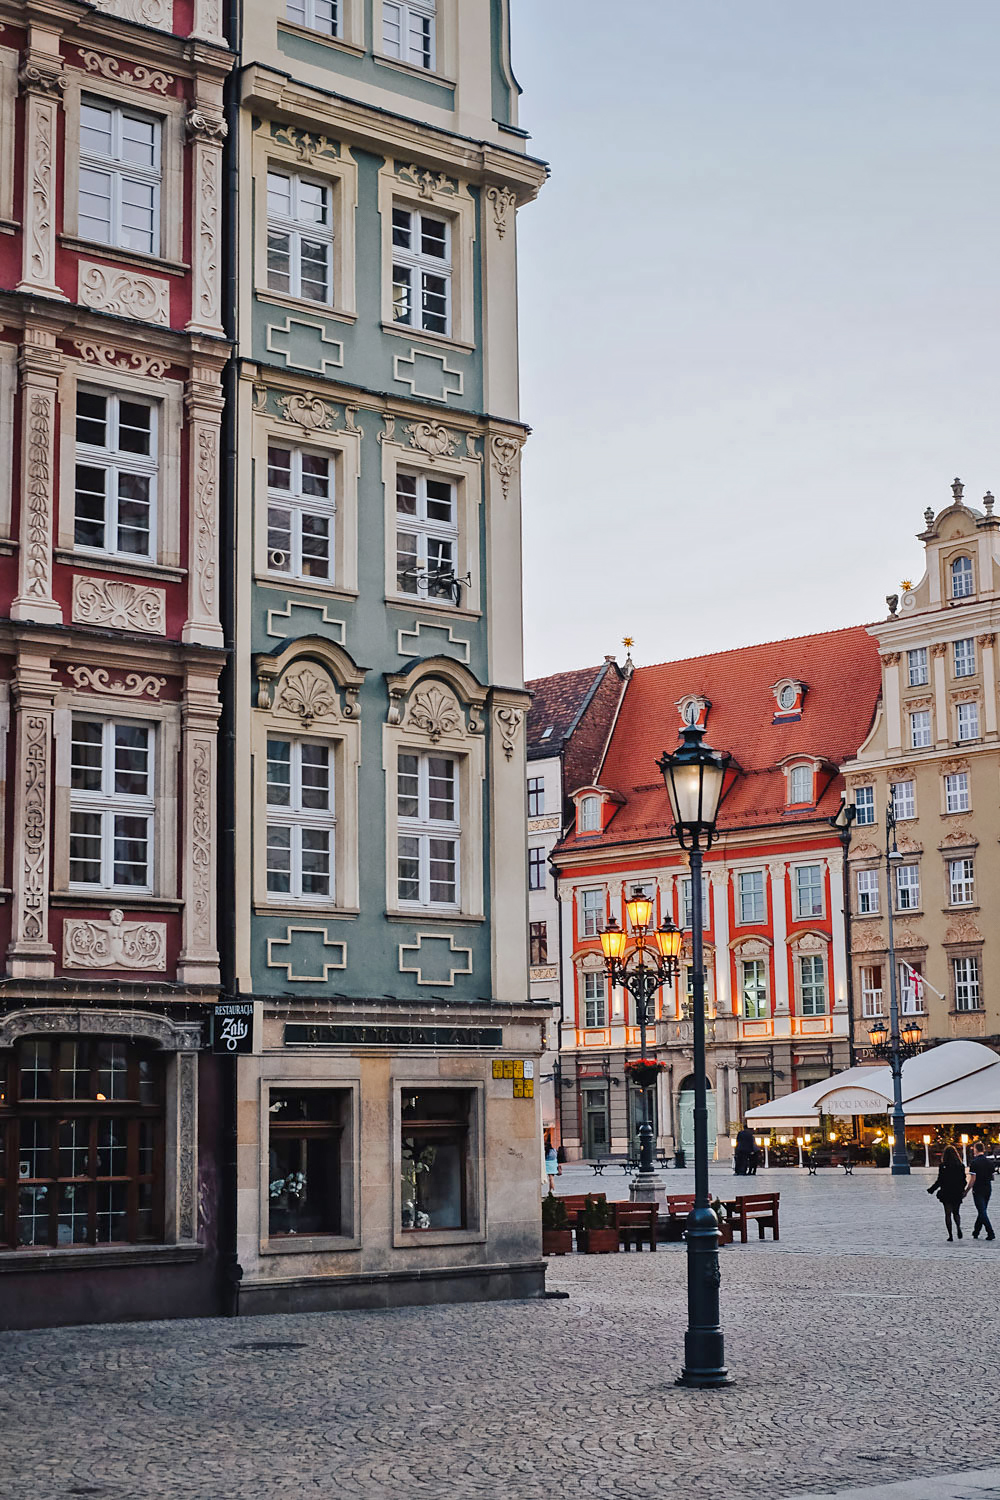 Rynek, the market square in the Old Town of Wroclaw, Poland